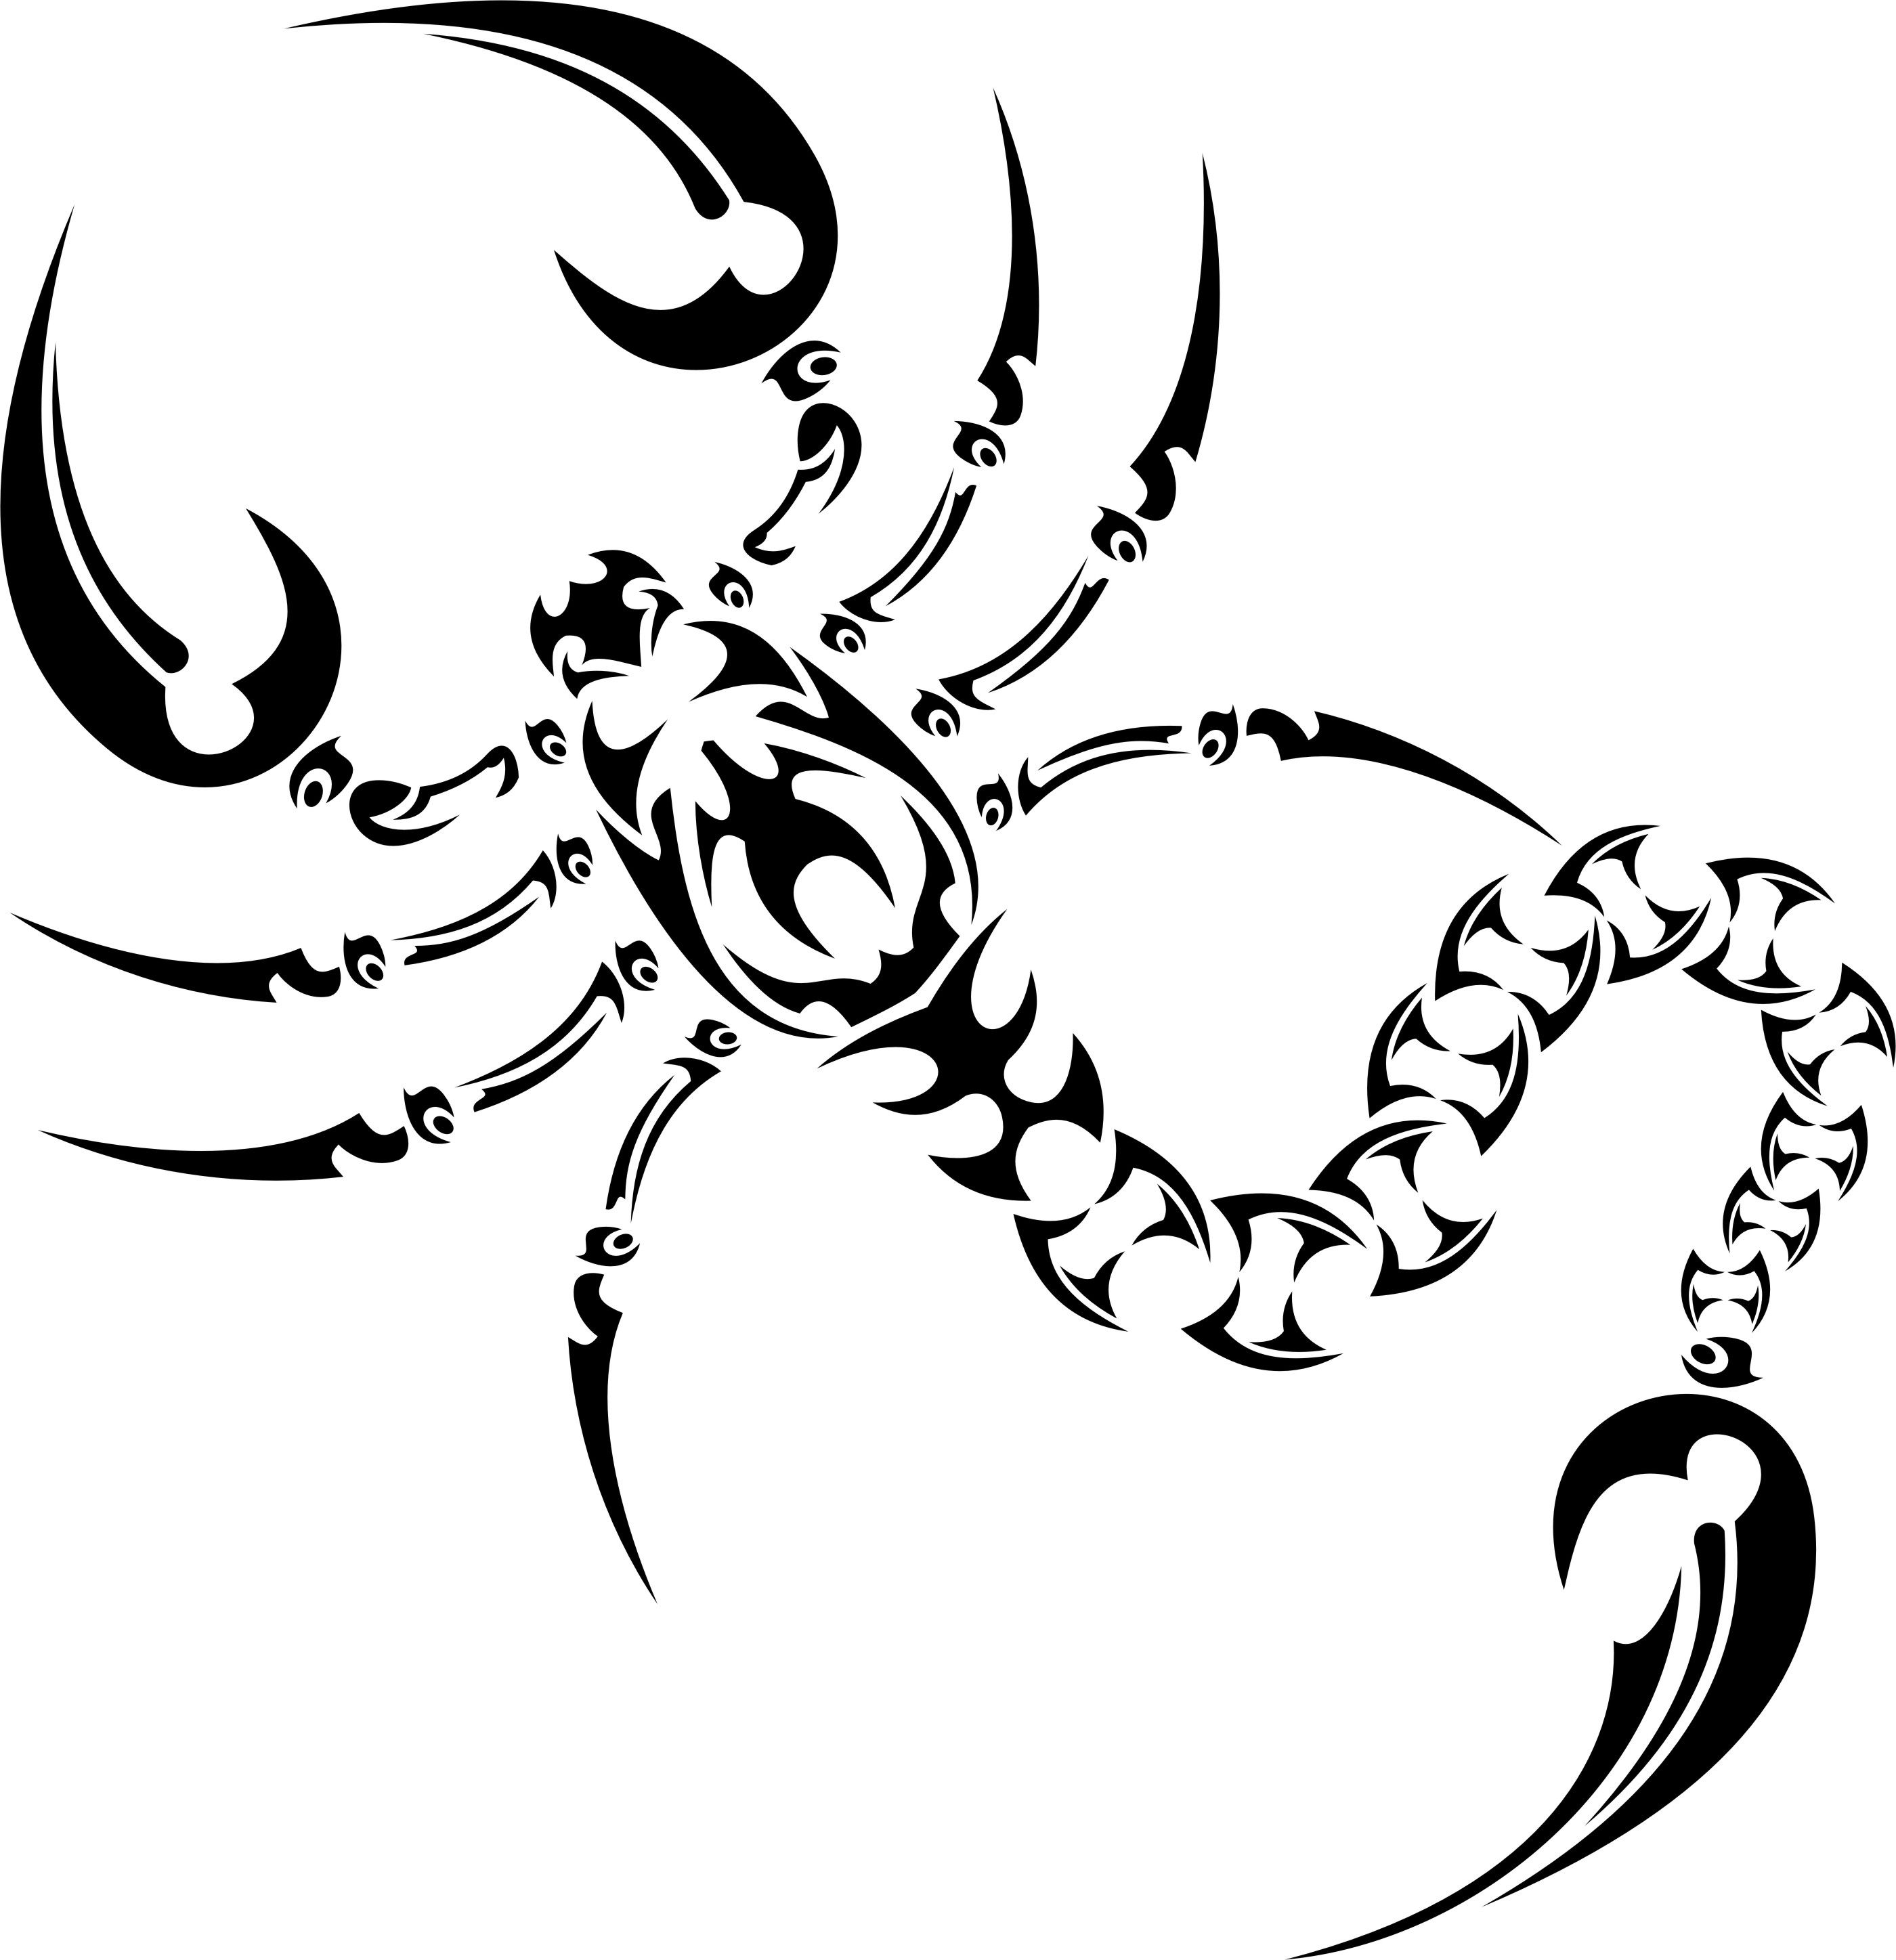 Scorpion king tattoo design - Tribal Tattoos Scorpion Tattoo Design Scorpion Tribal Tattoos The Tattoo